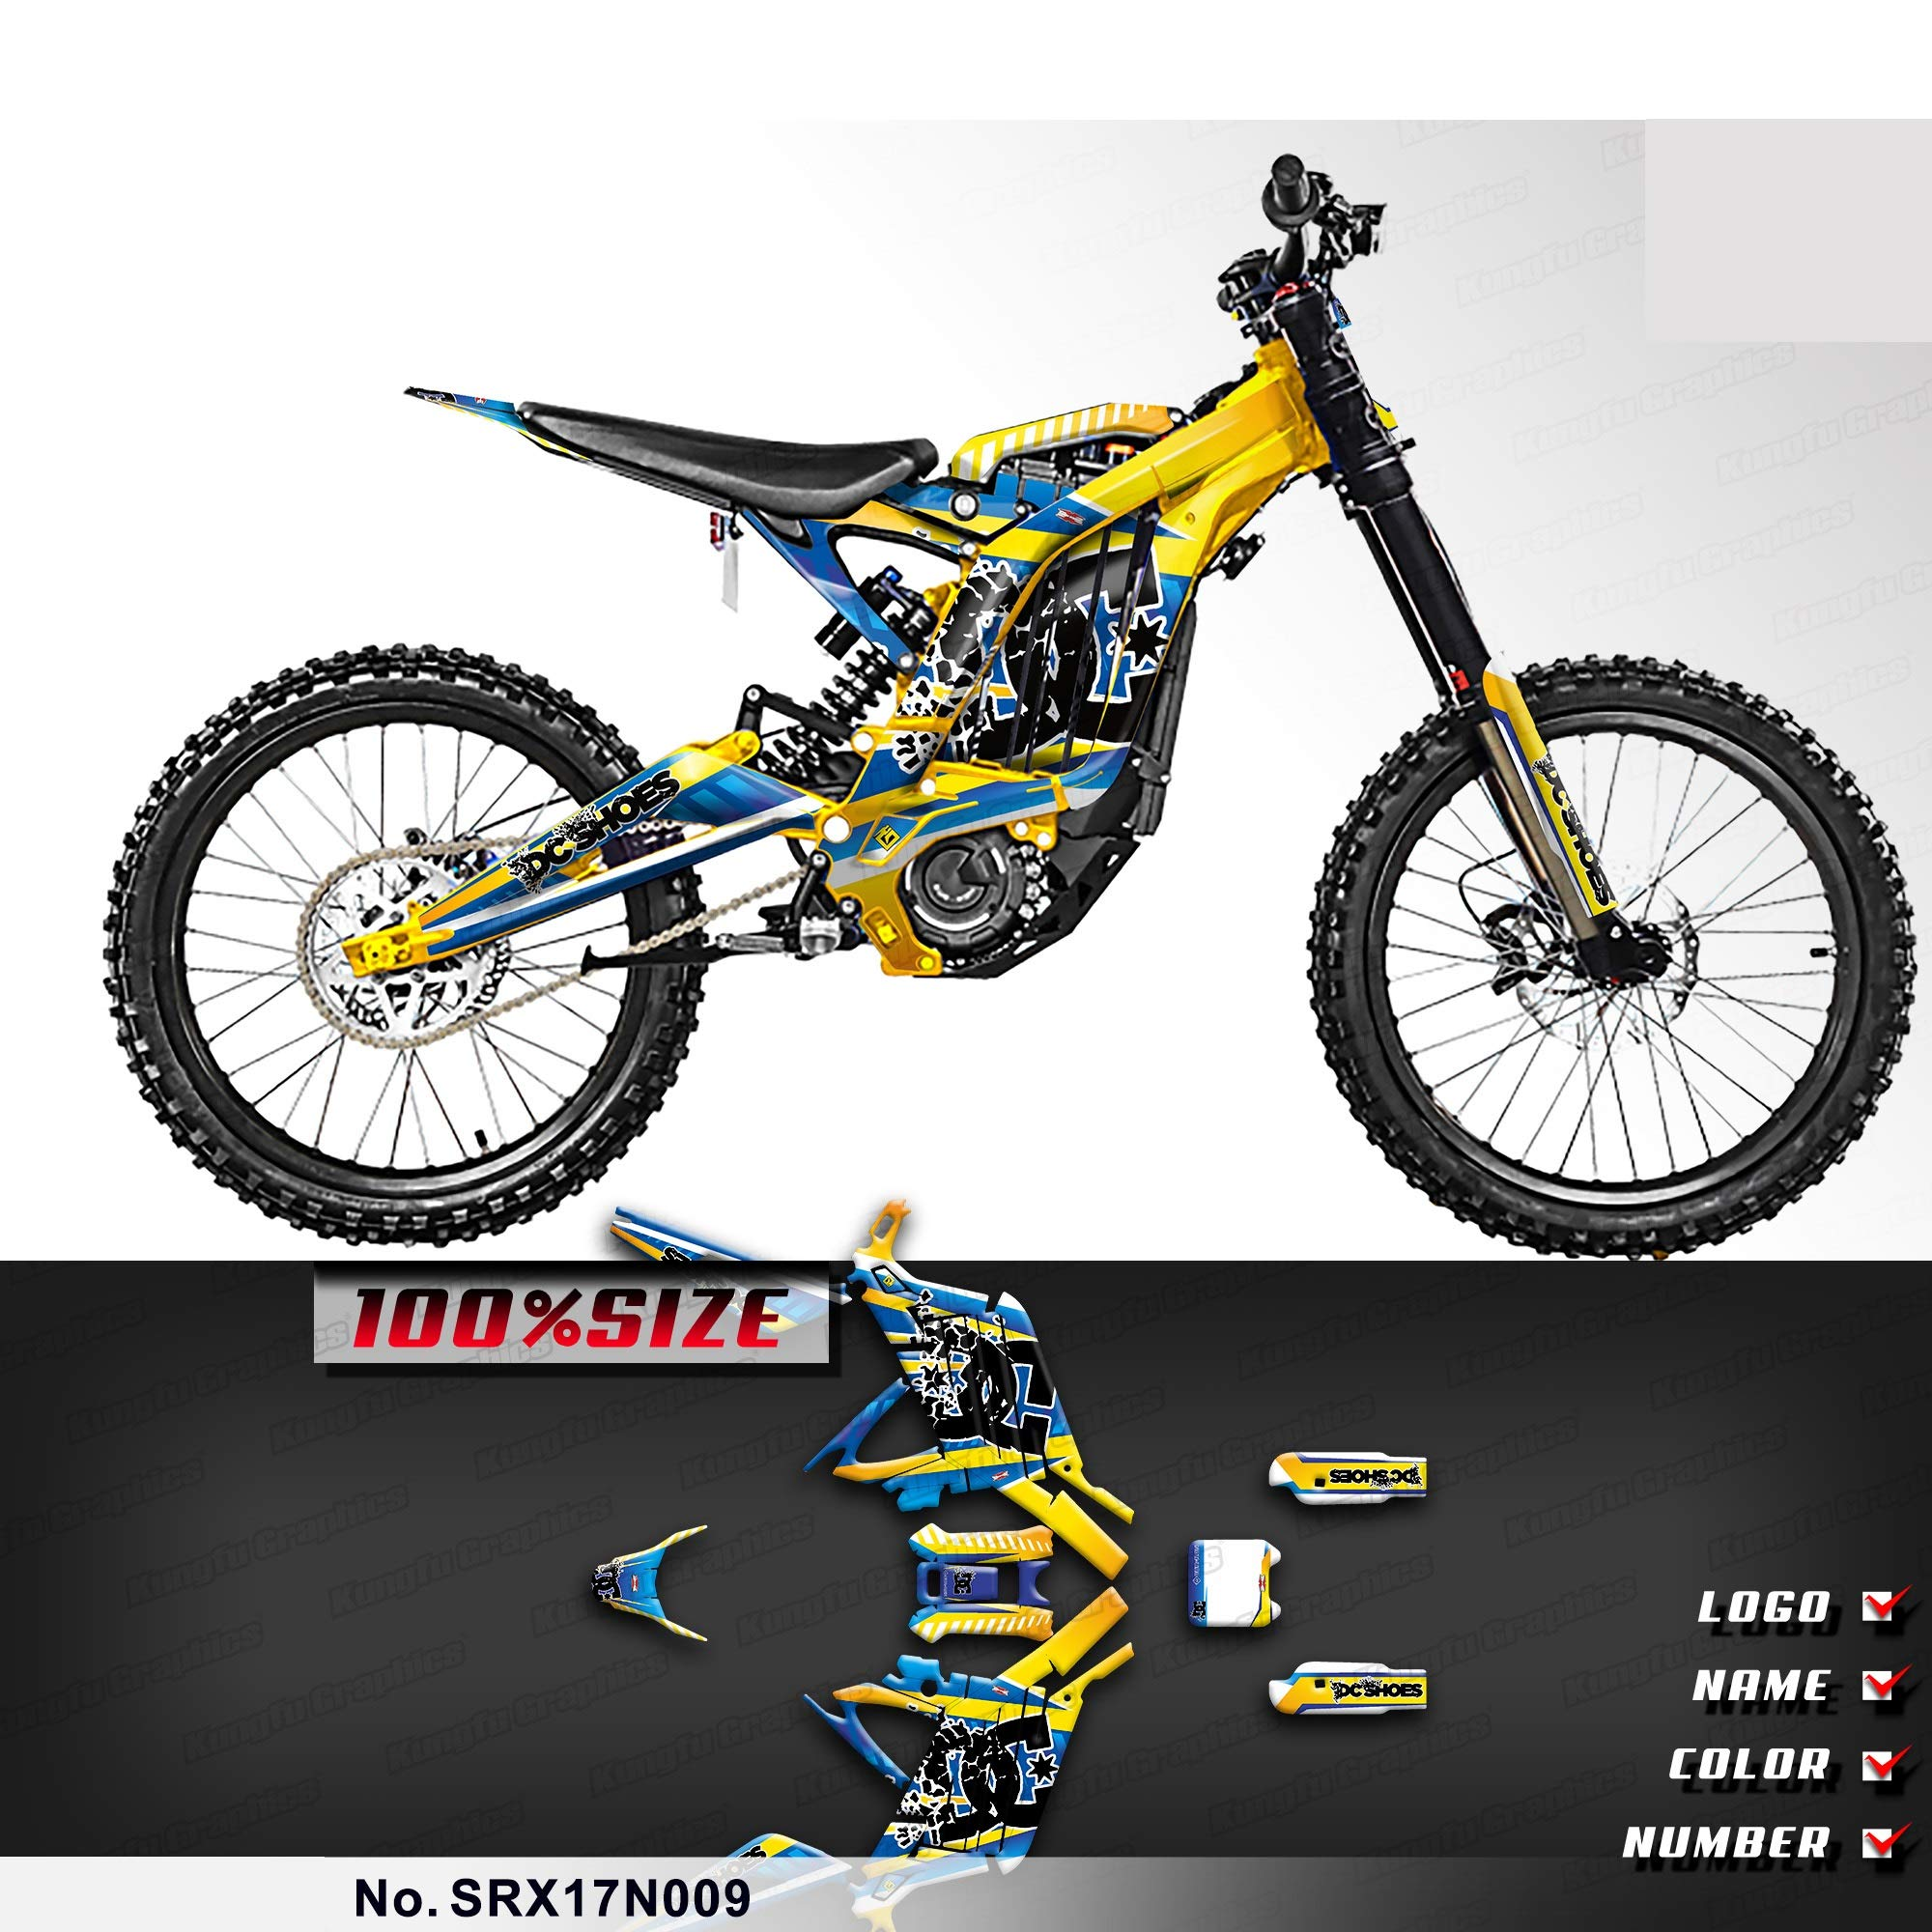 Kungfu Graphics Custom Decal Kit for Sur-Ron Light Bee X Electric Off-Road Motorcycle Dirt Bike, Yellow Blue, SRX17N009